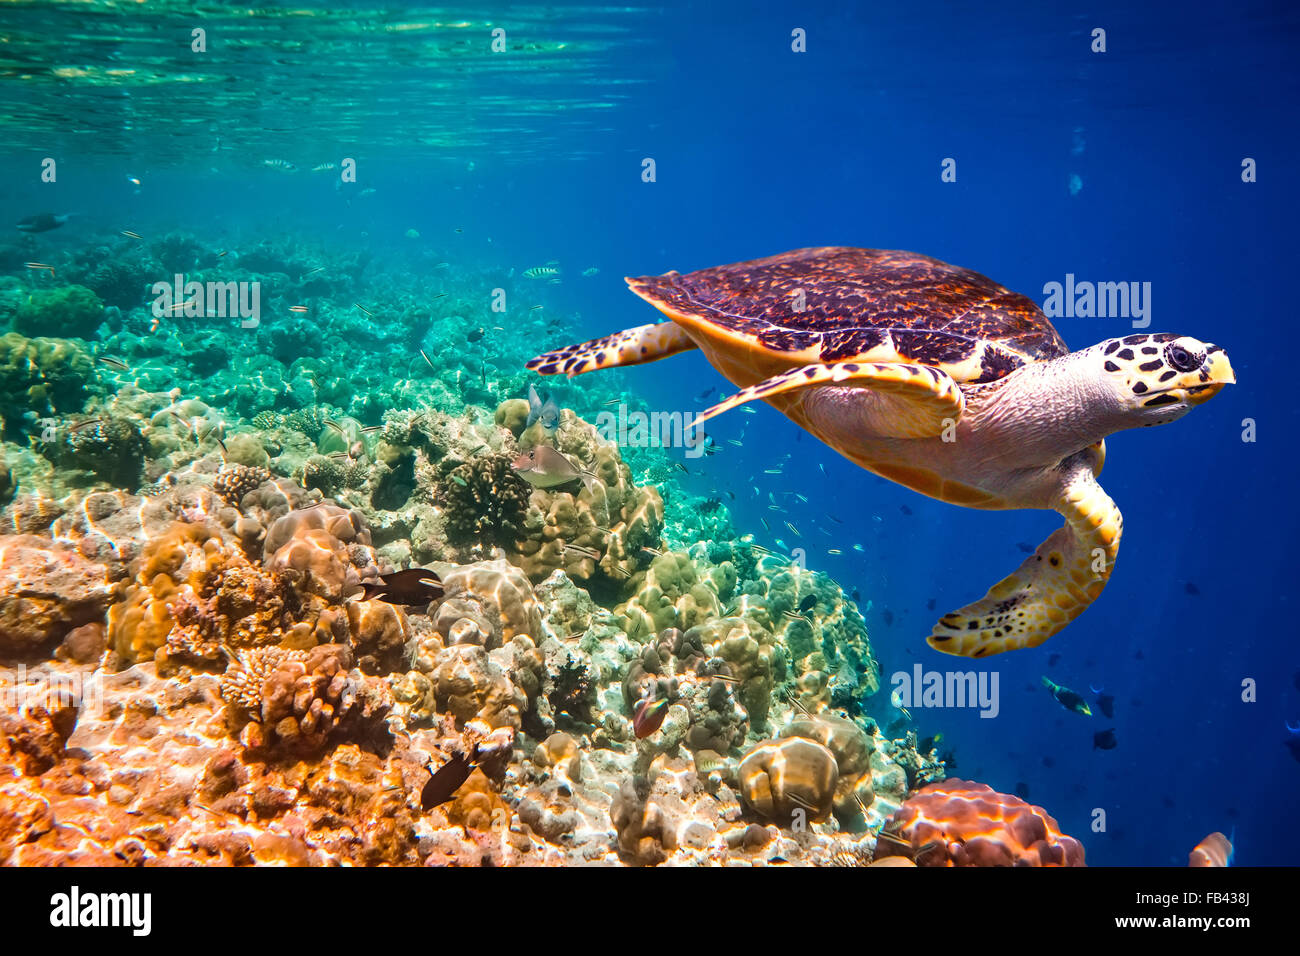 Hawksbill Turtle - Eretmochelys imbricata floats under water. Maldives Indian Ocean coral reef. - Stock Image